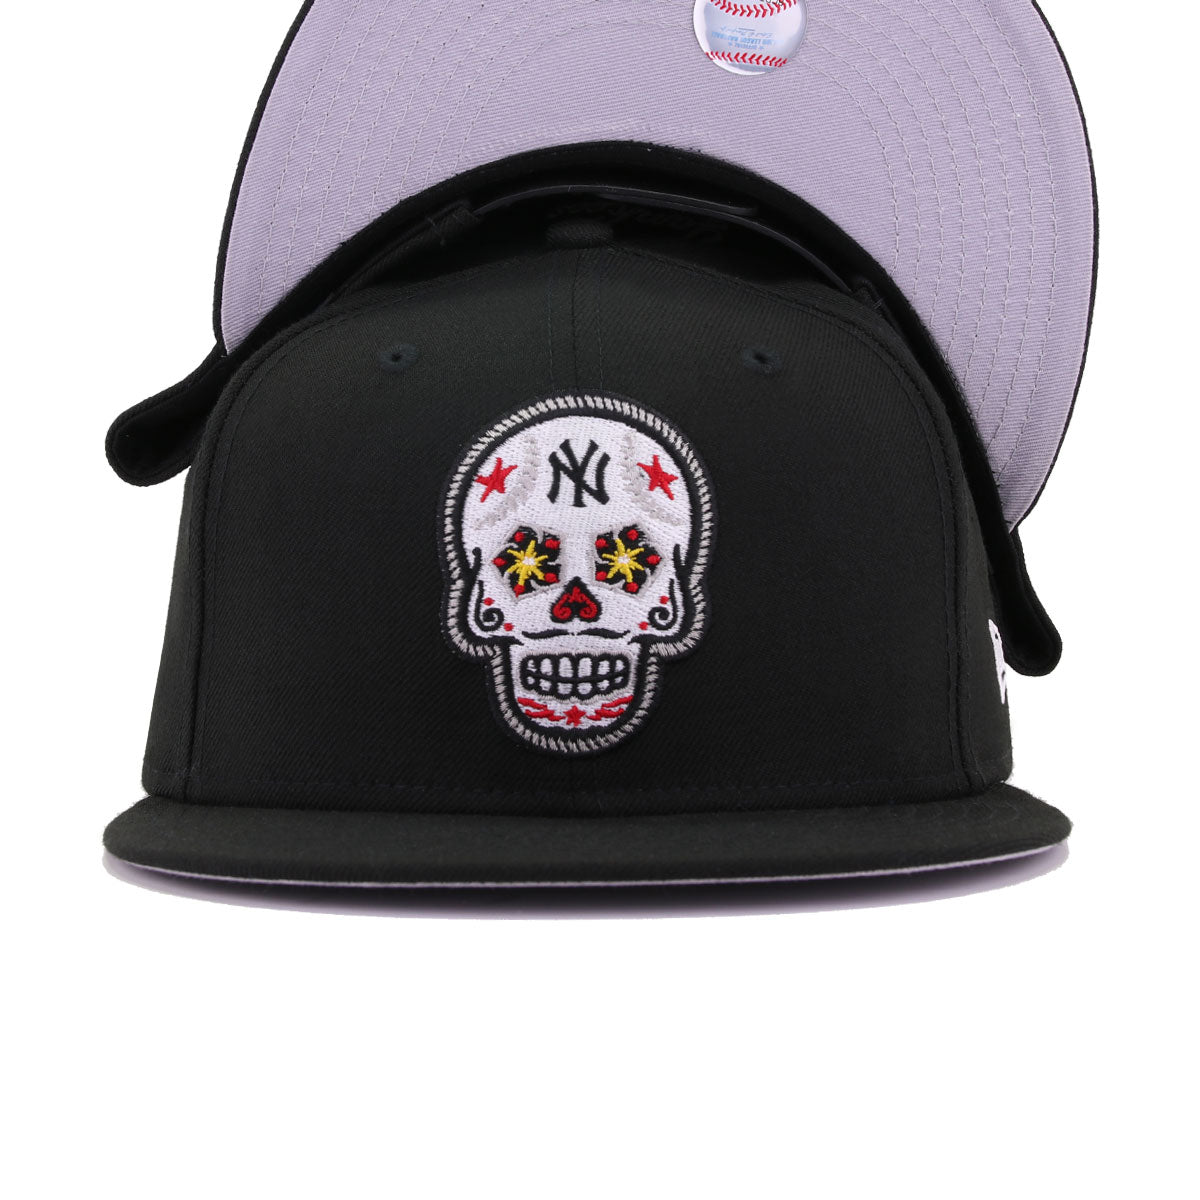 New York Yankees Black Sugar Skull New Era 9Fifty Snapback